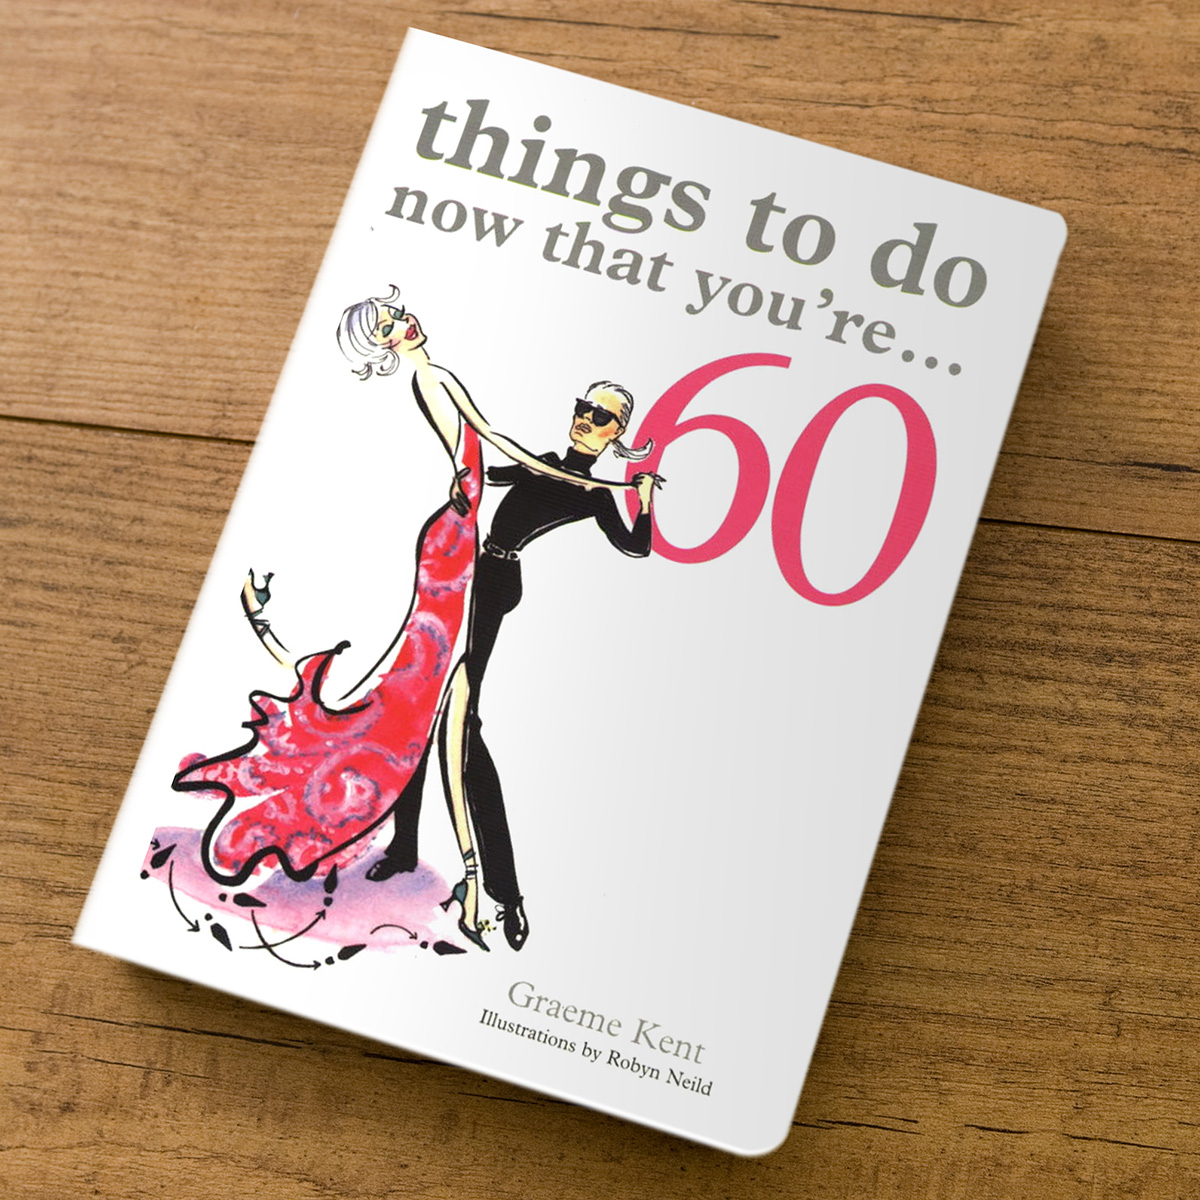 Wedding Gift Ideas For 60 Year Olds : ... re 60 - Gift Book :: 60th Birthday Gifts from GettingPersonal.co.uk